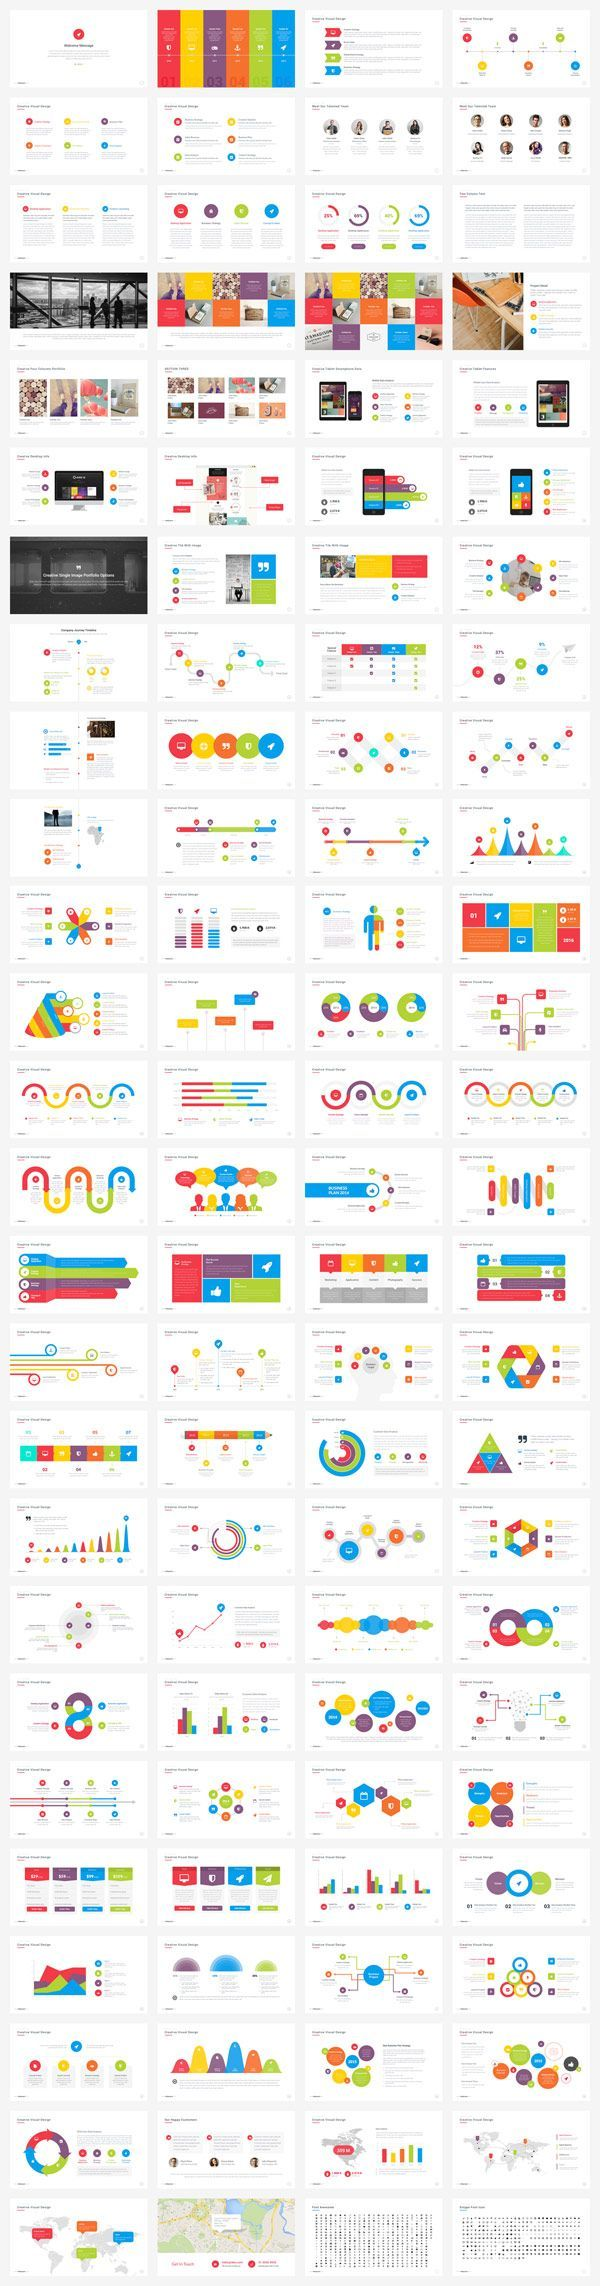 Look at all the pre designed slides with colorful infographics, charts, and much more.: